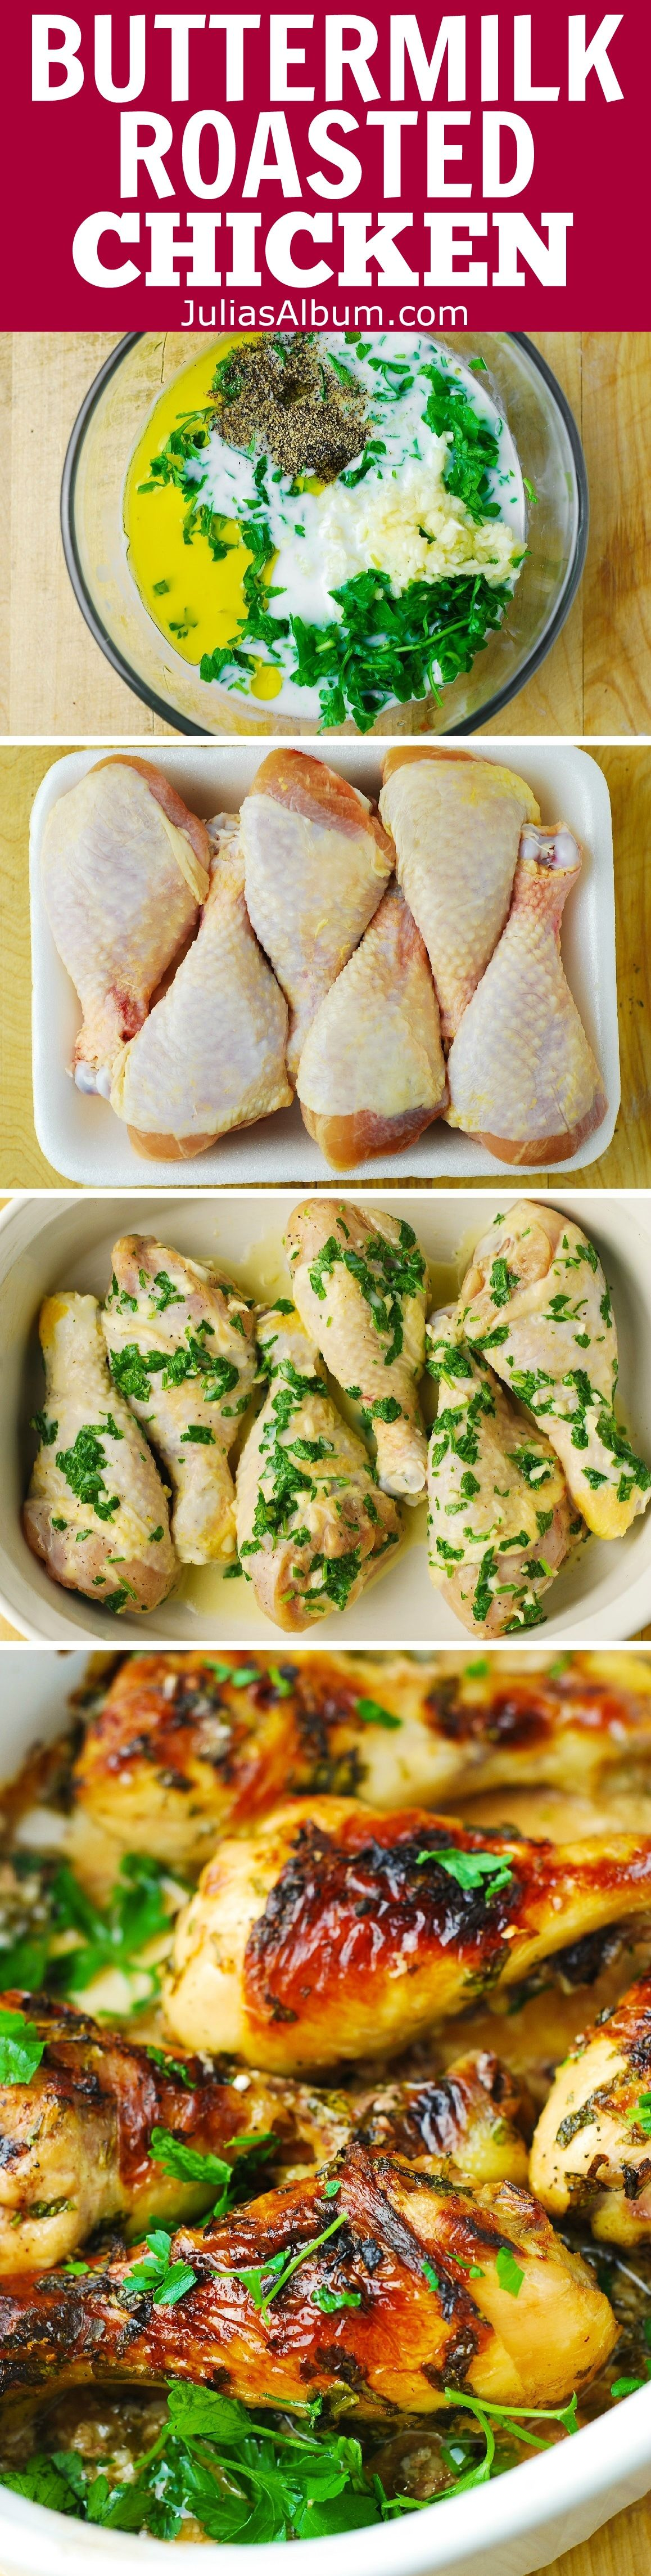 Buttermilk Marinated Chicken Healthier Way To Cook Chicken Drumsticks Buttermilk Marinated Chicken Chicken Recipes Poultry Recipes